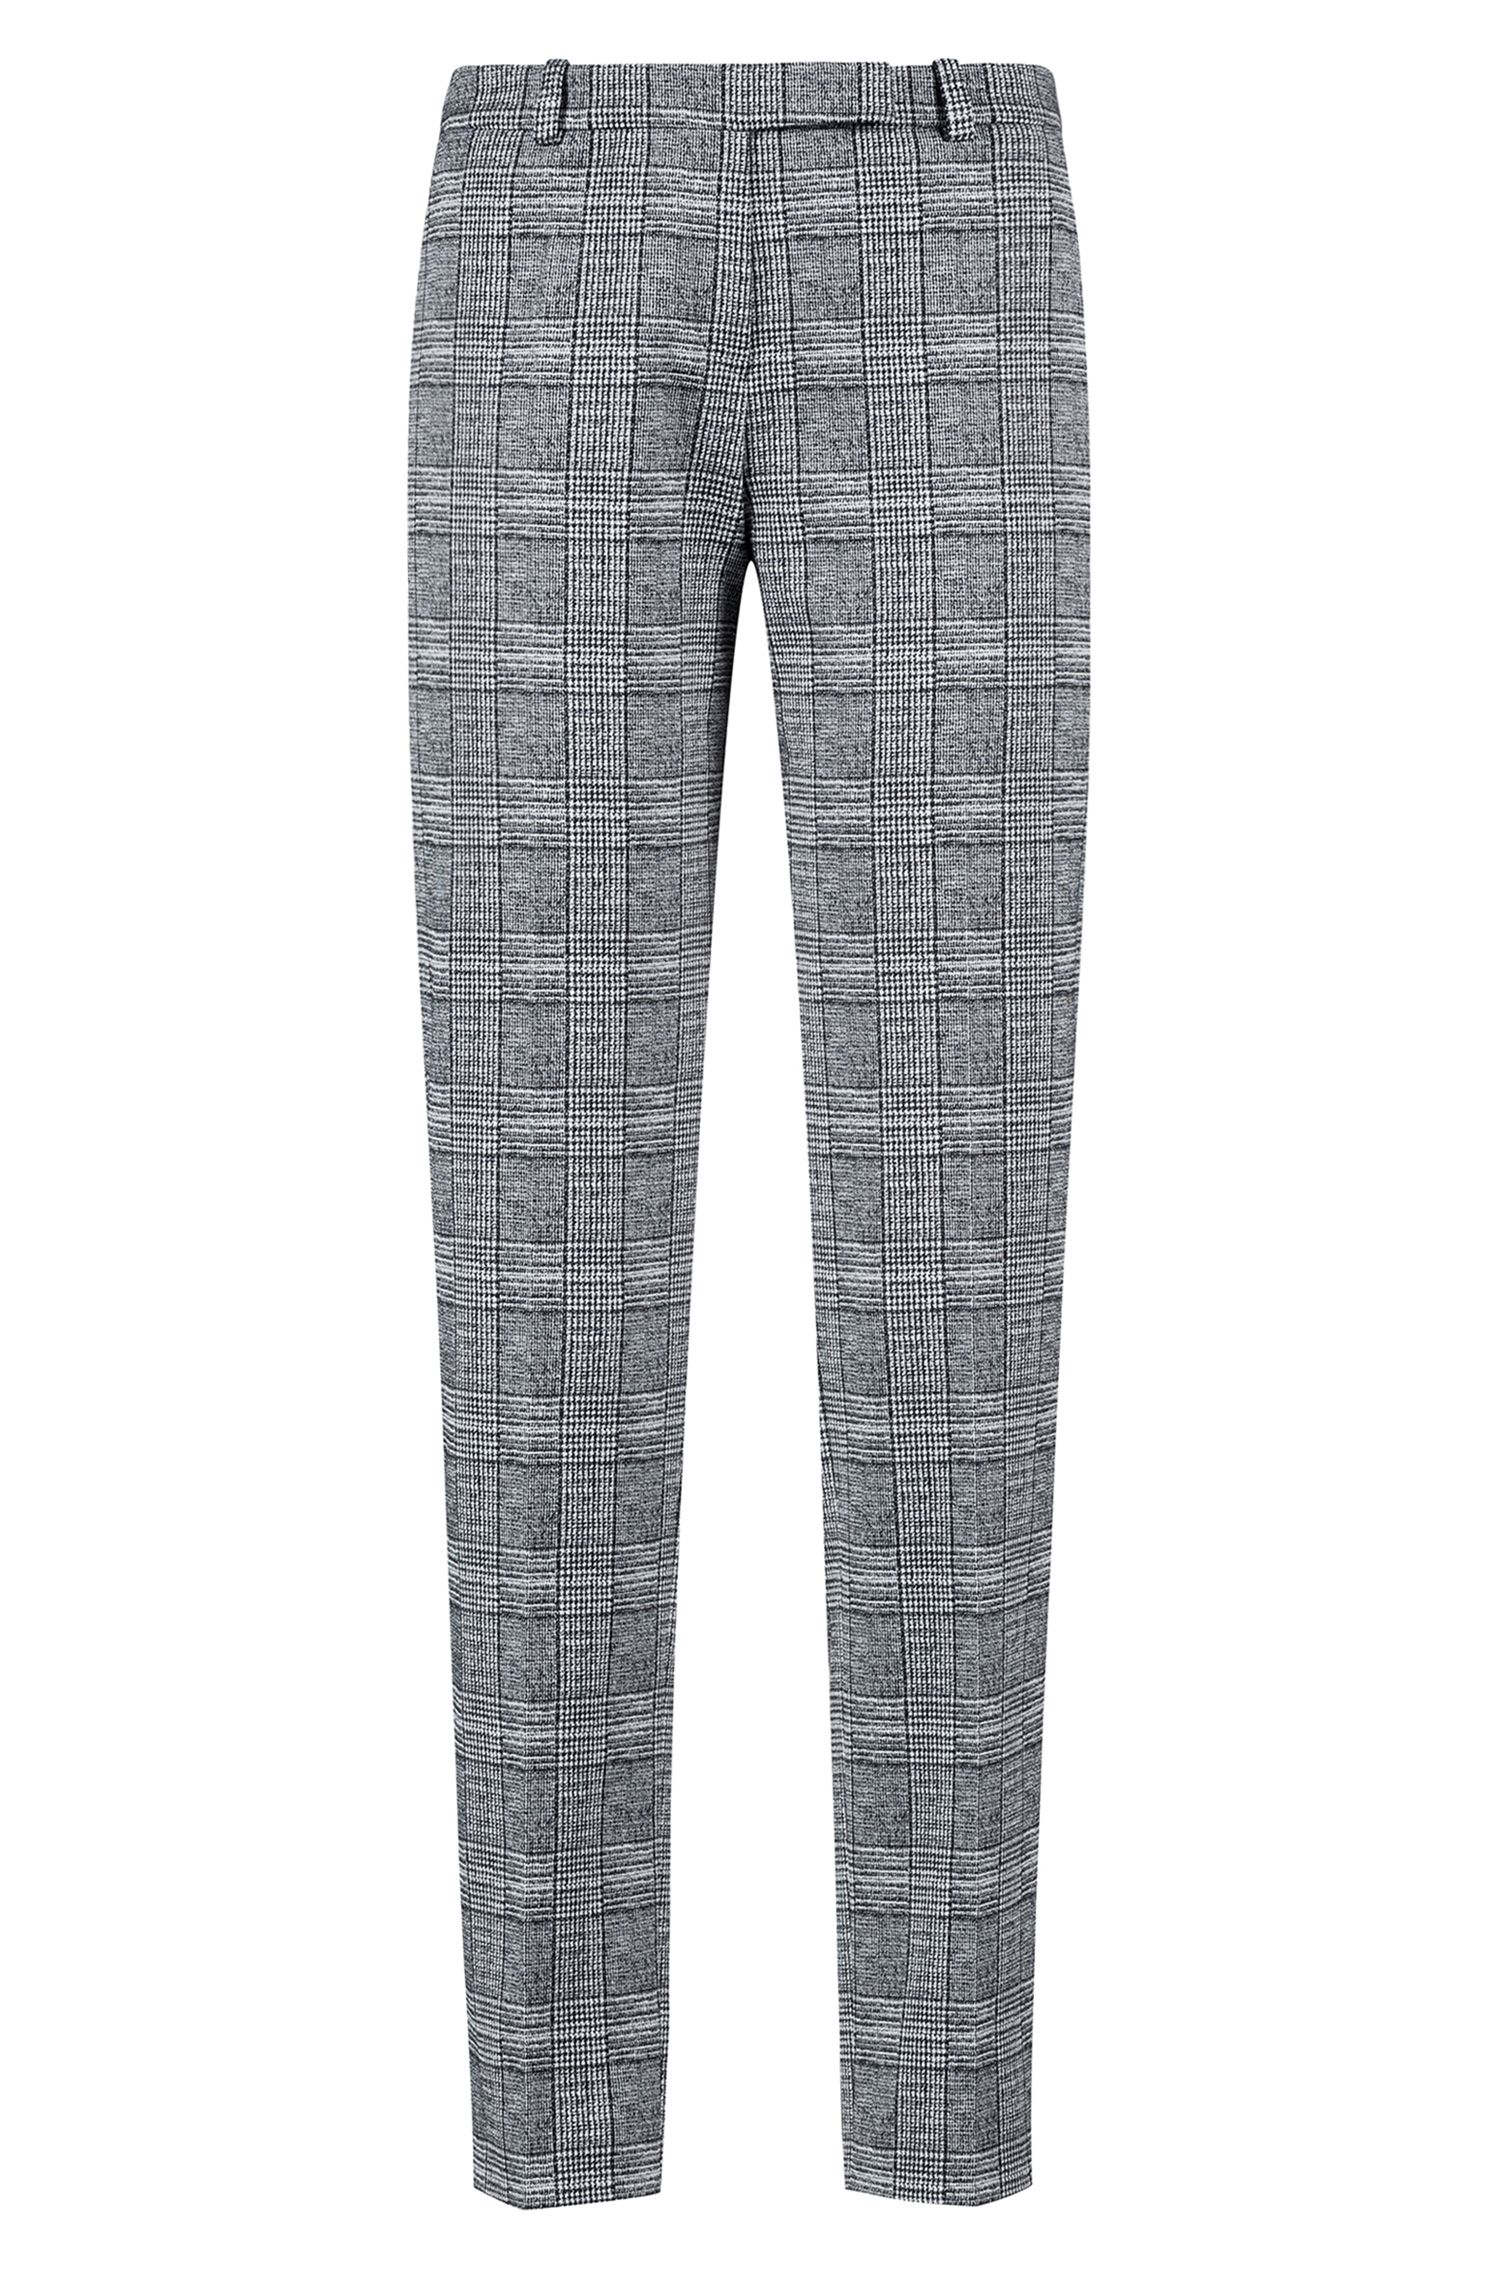 Cropped cigarette pants in black-and-white check pattern, Patterned